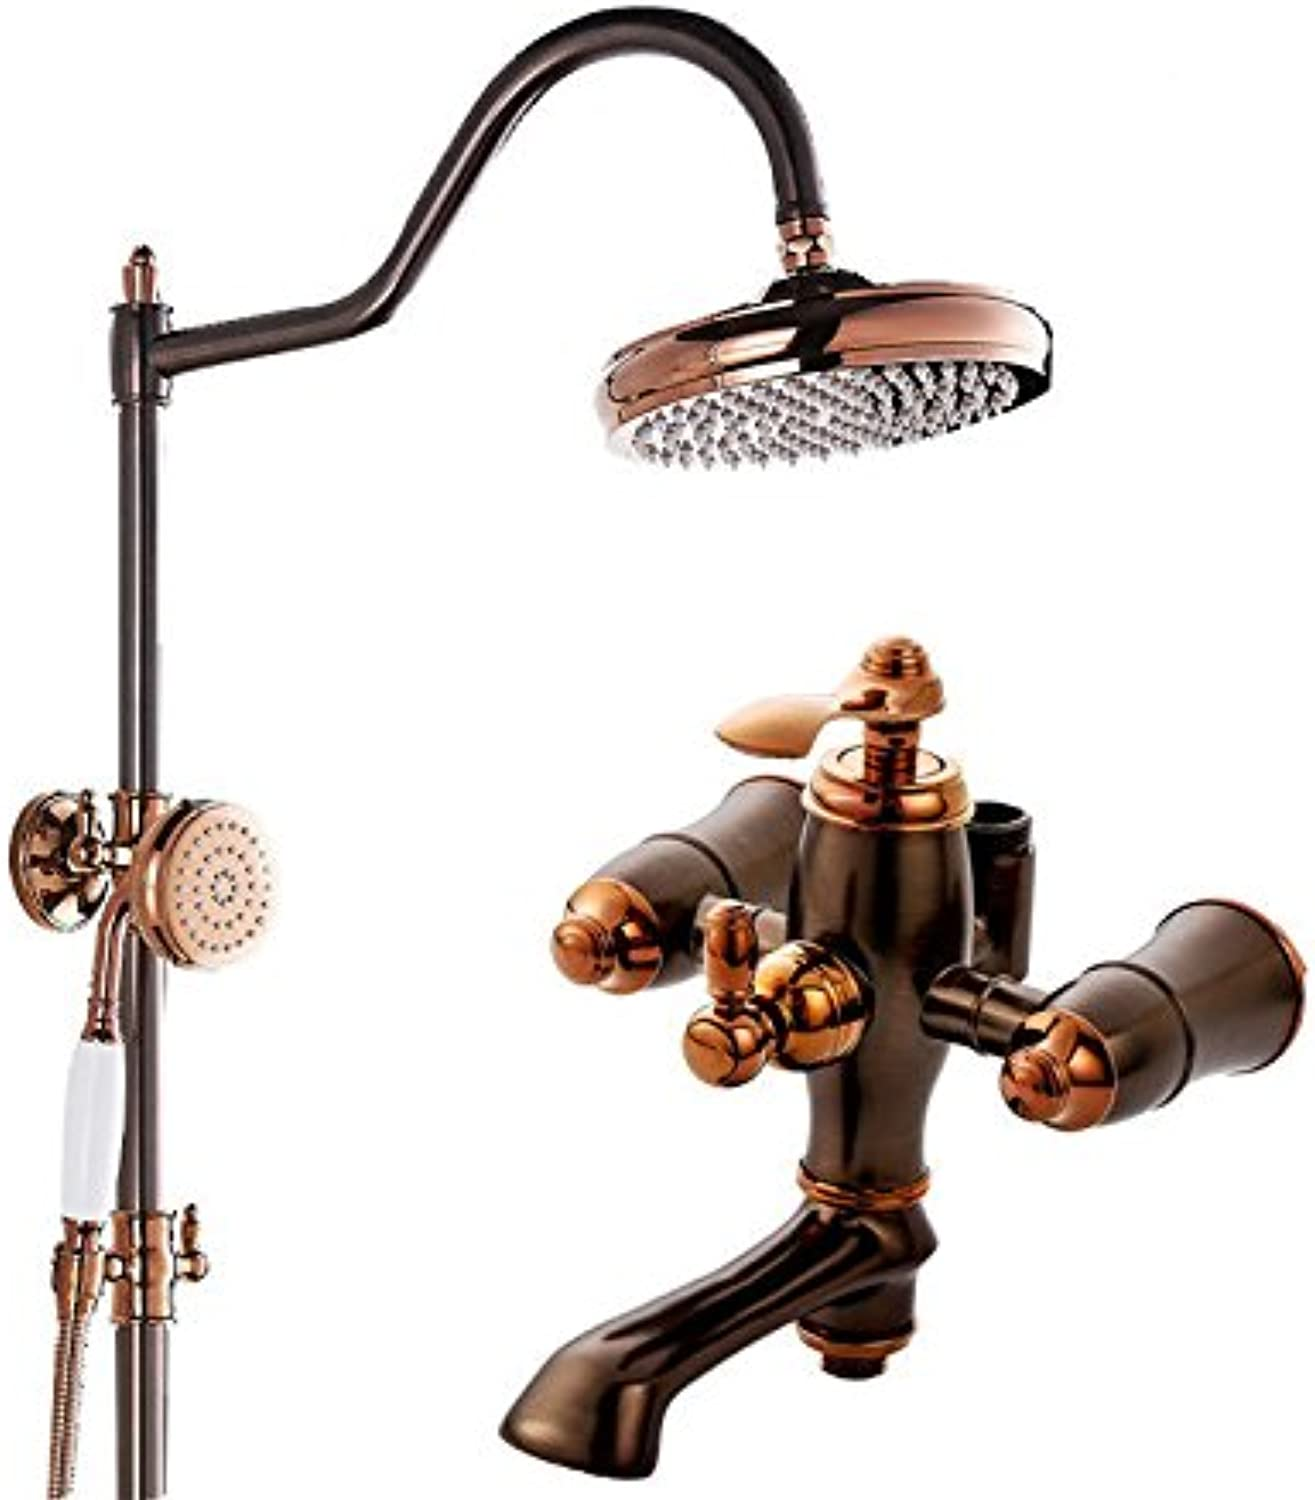 ETERNAL QUALITY Bathroom Sink Basin Tap Brass Mixer Tap Washroom Mixer Faucet Antique pink gold faucets shower faucets C Package Kitchen Sink Taps